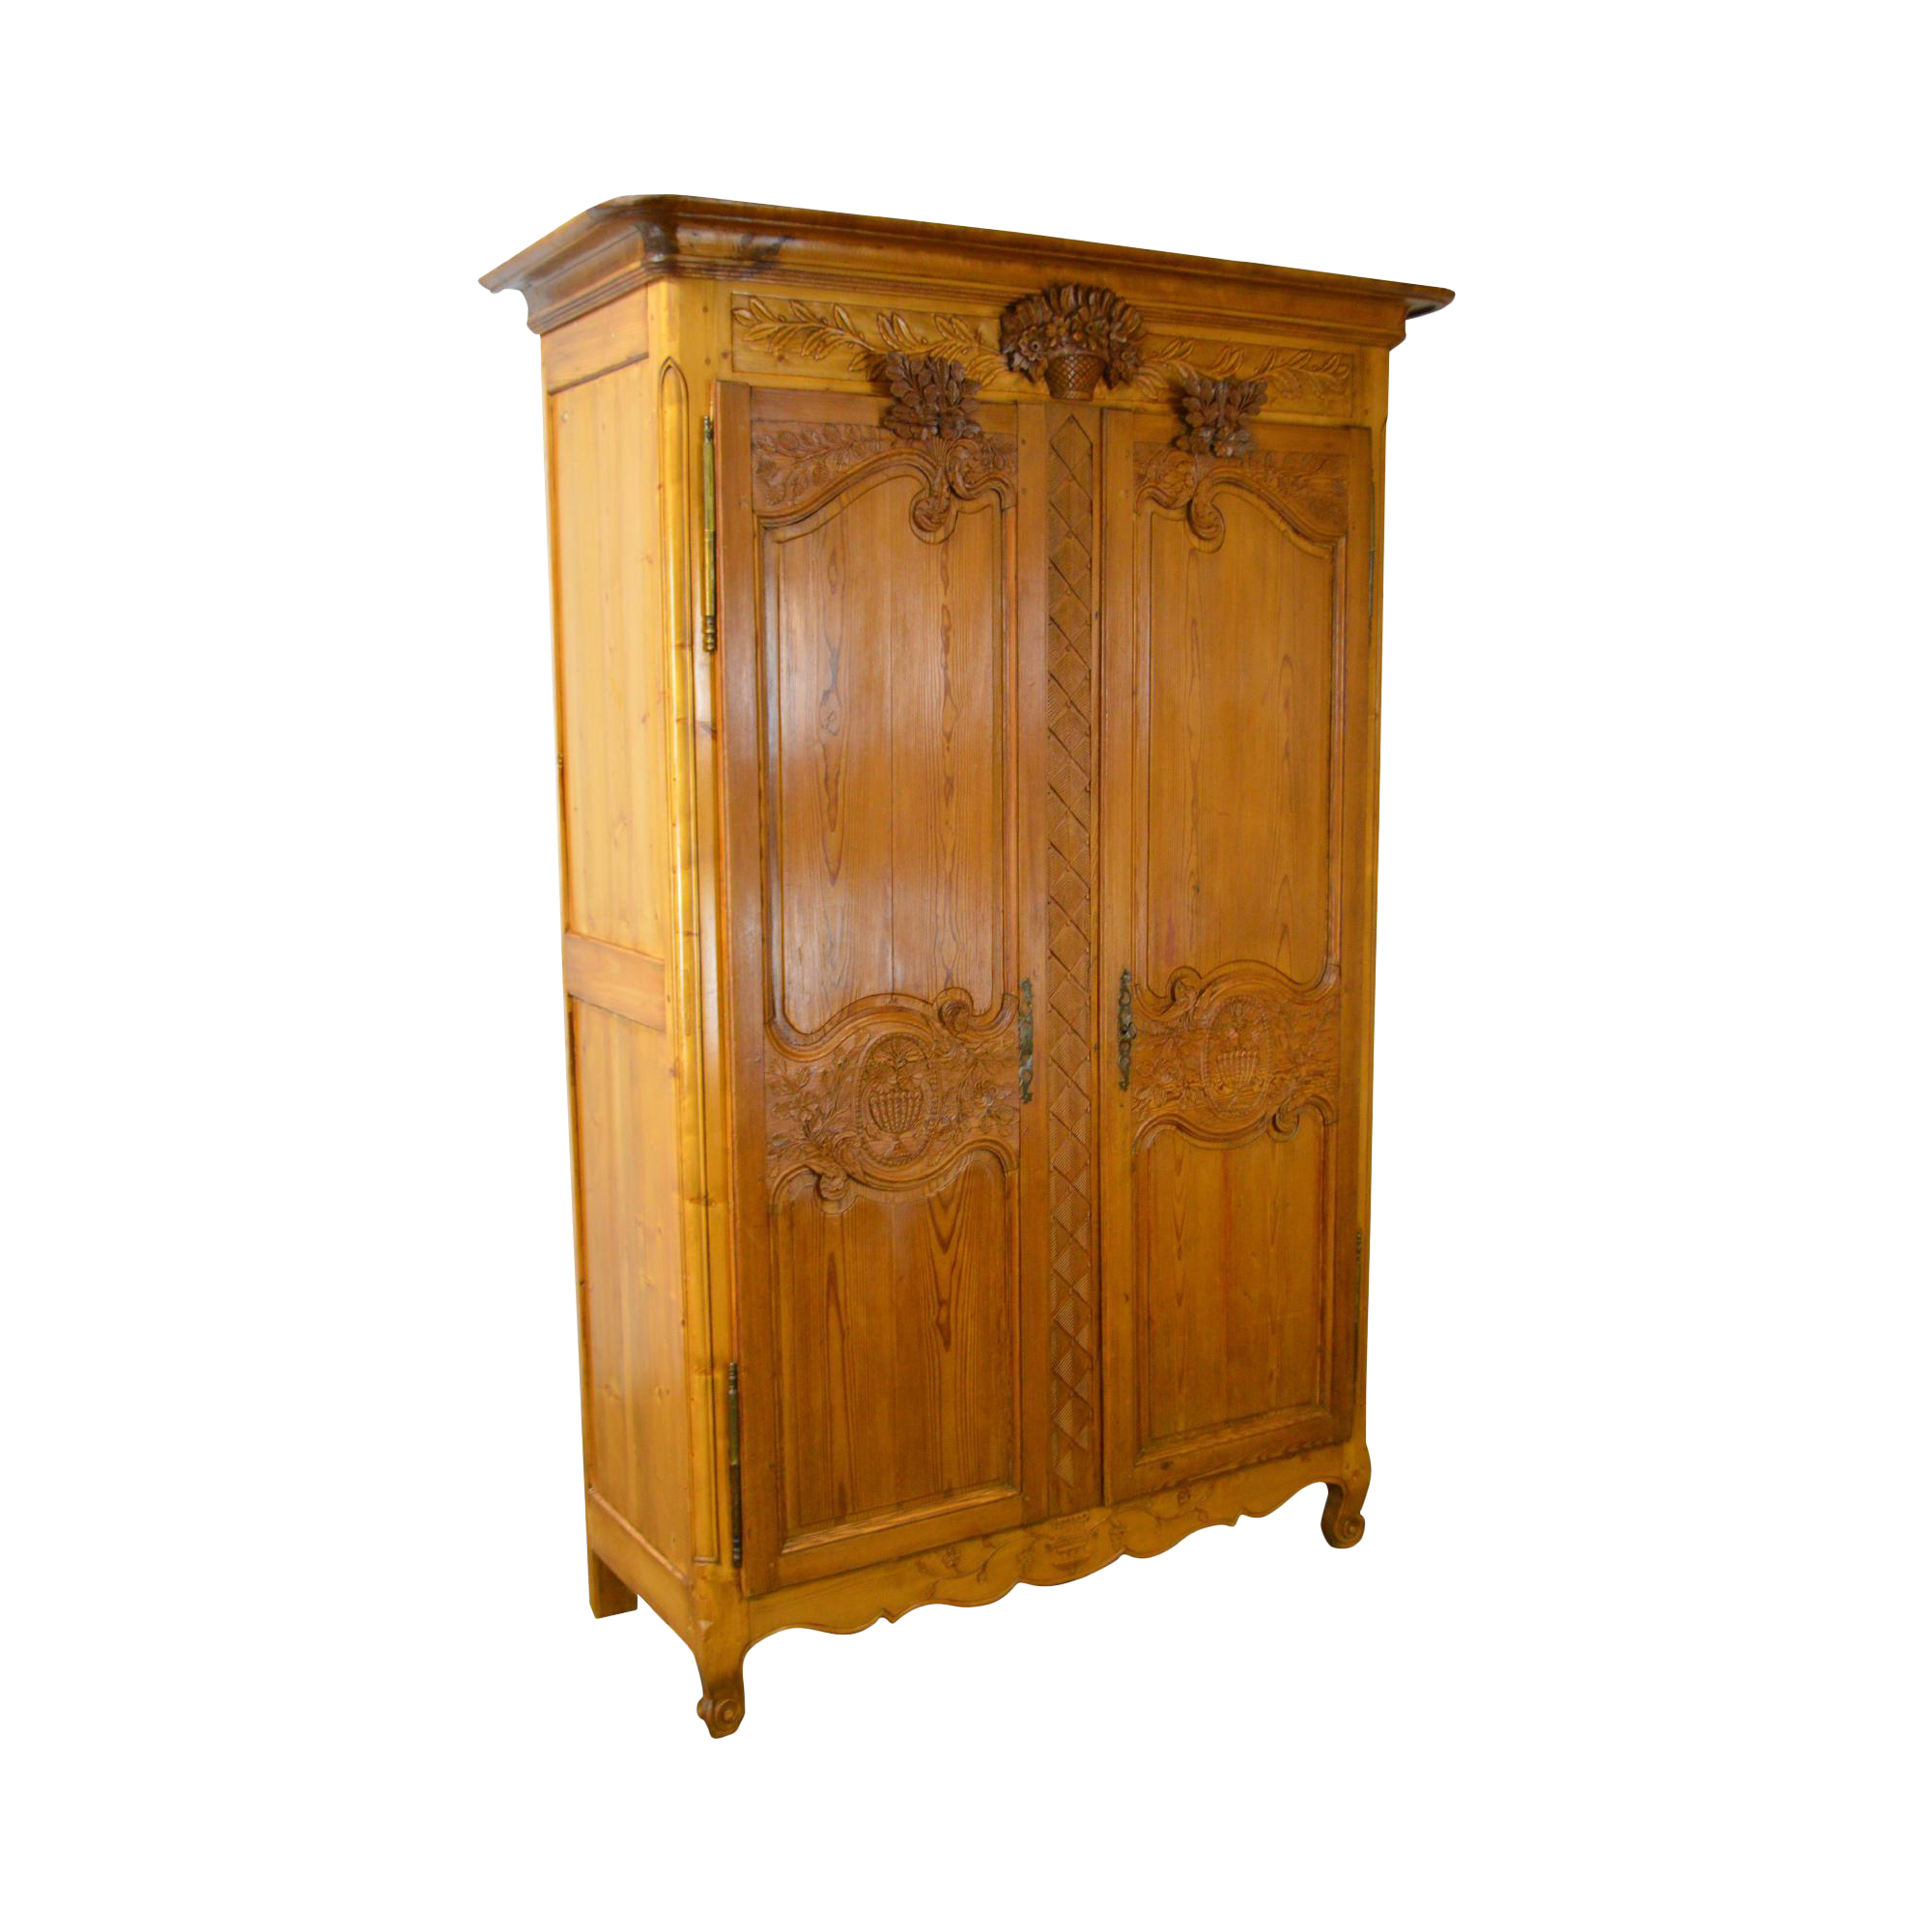 Antique 18th century french louis xv style large armoire for Armoire penderie style japonais